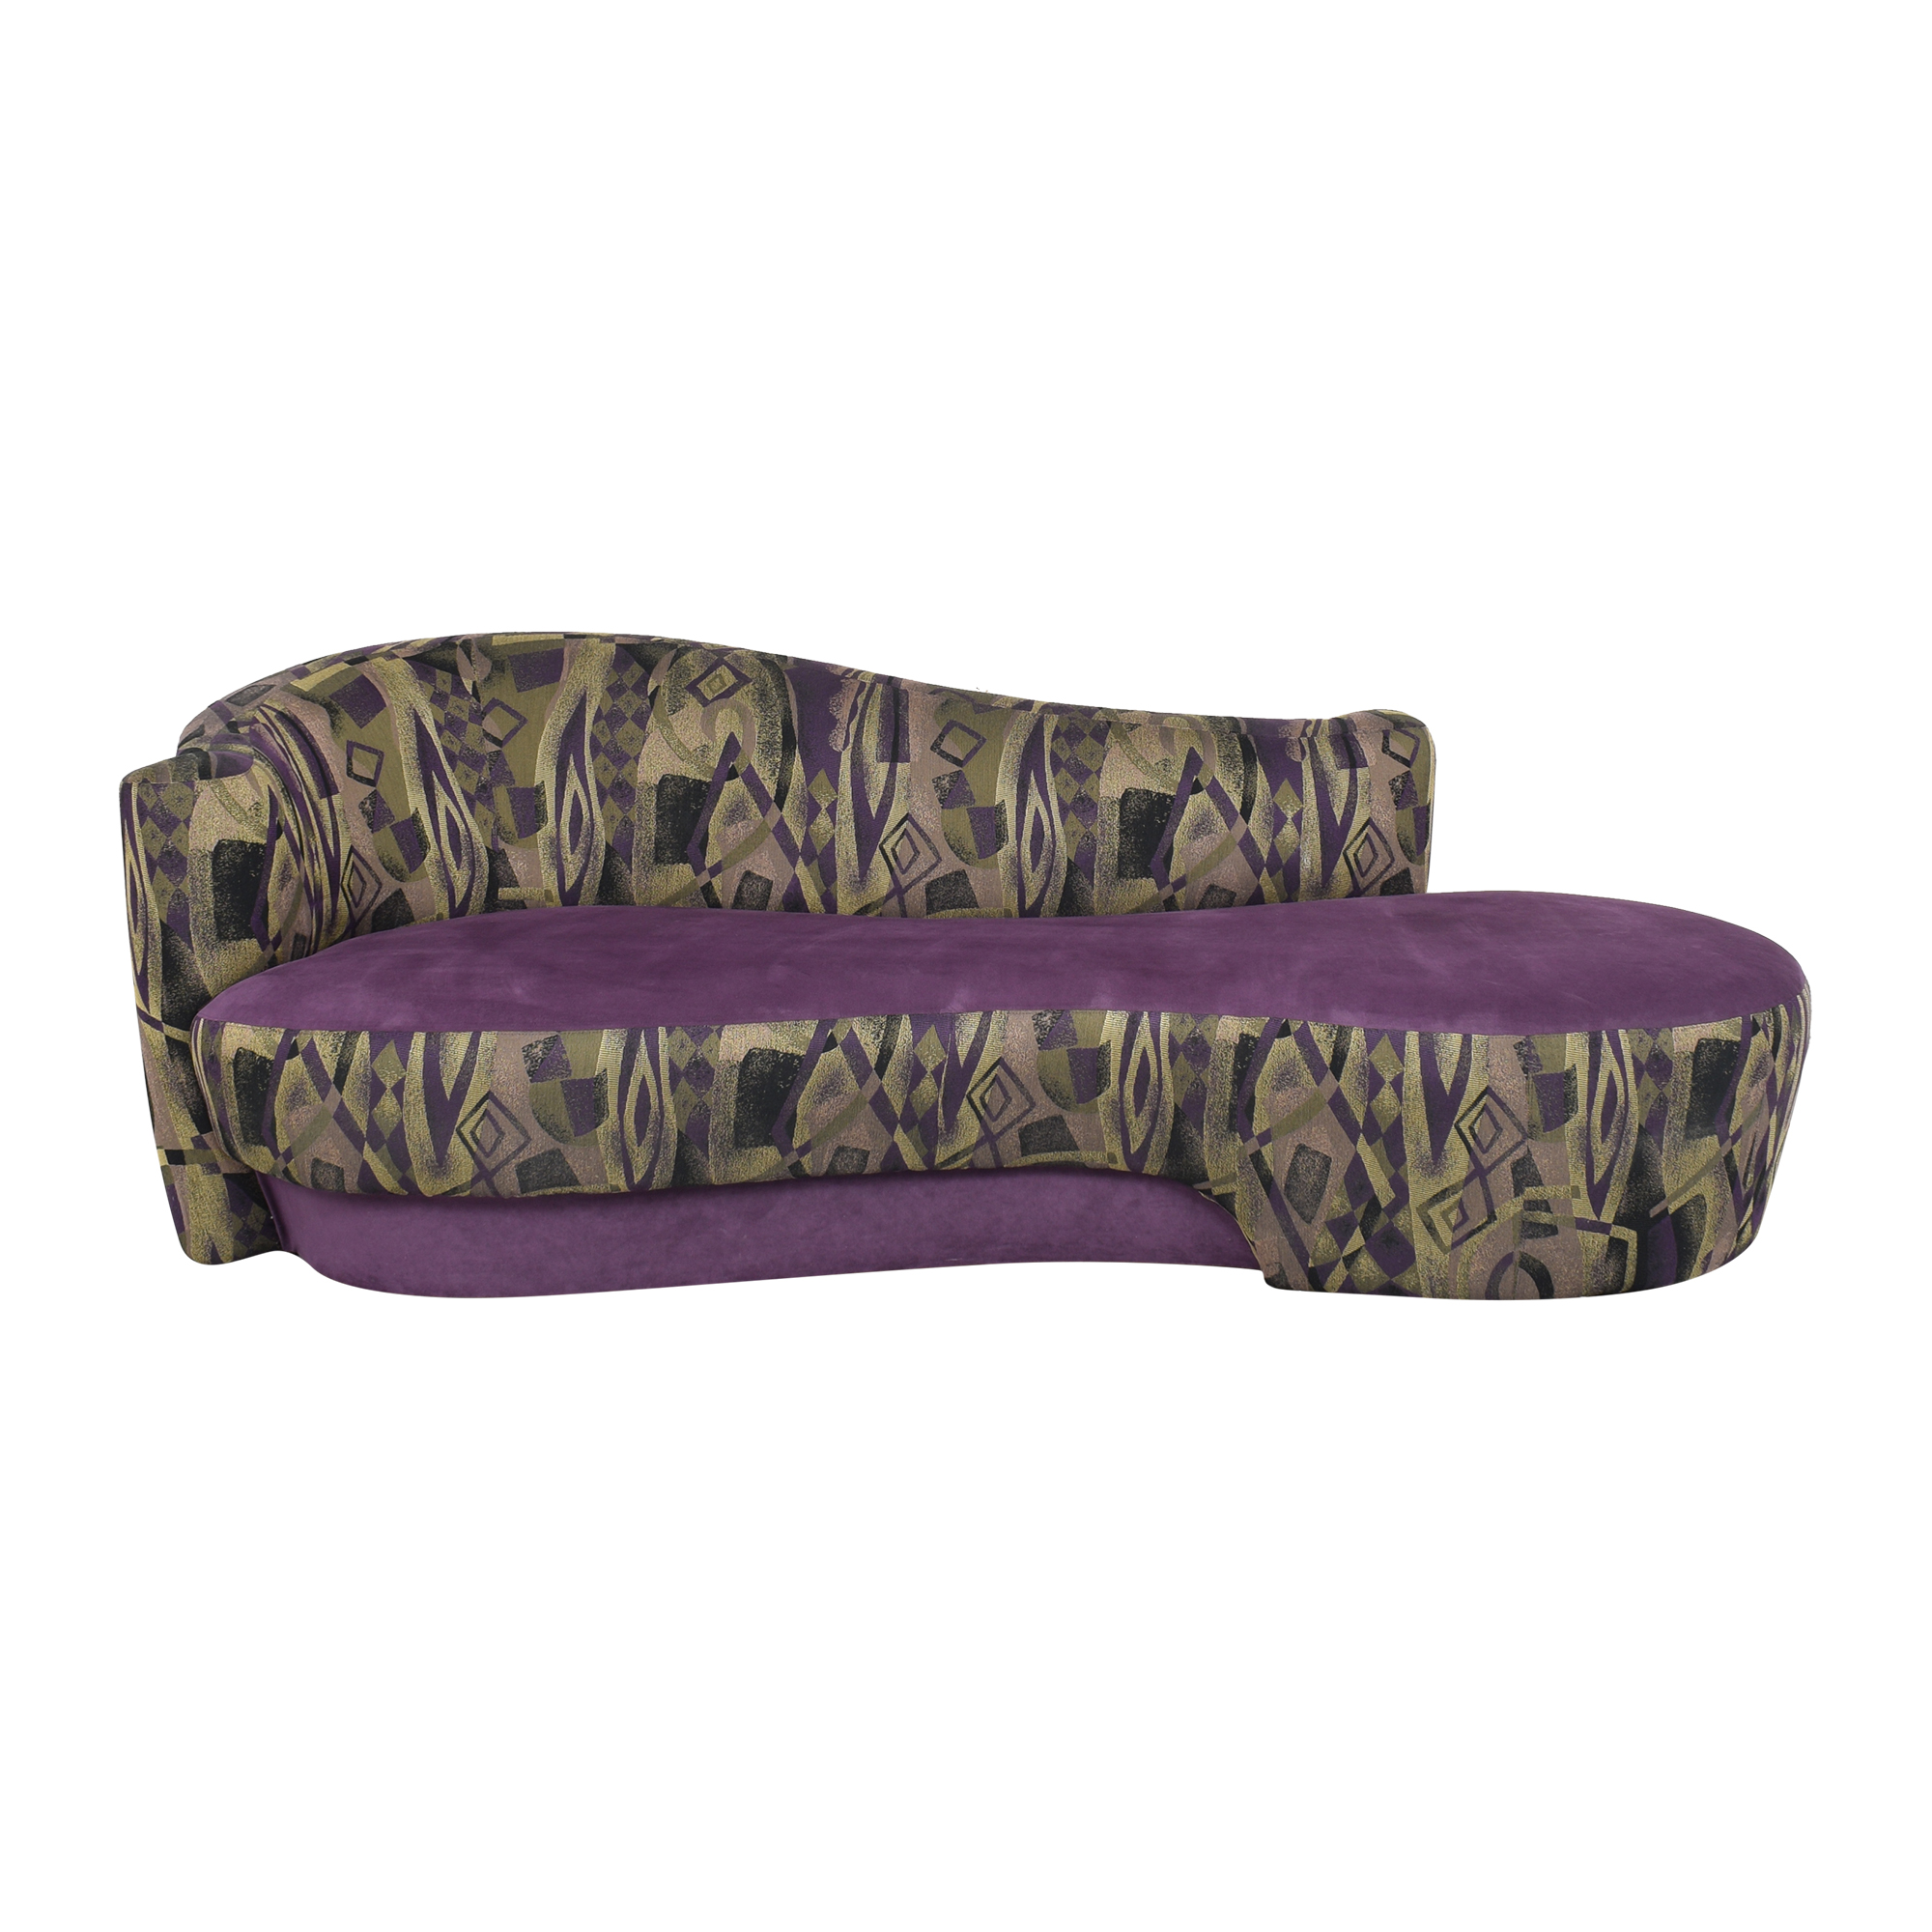 Weiman Weiman Serpentine Cloud Sofa ct